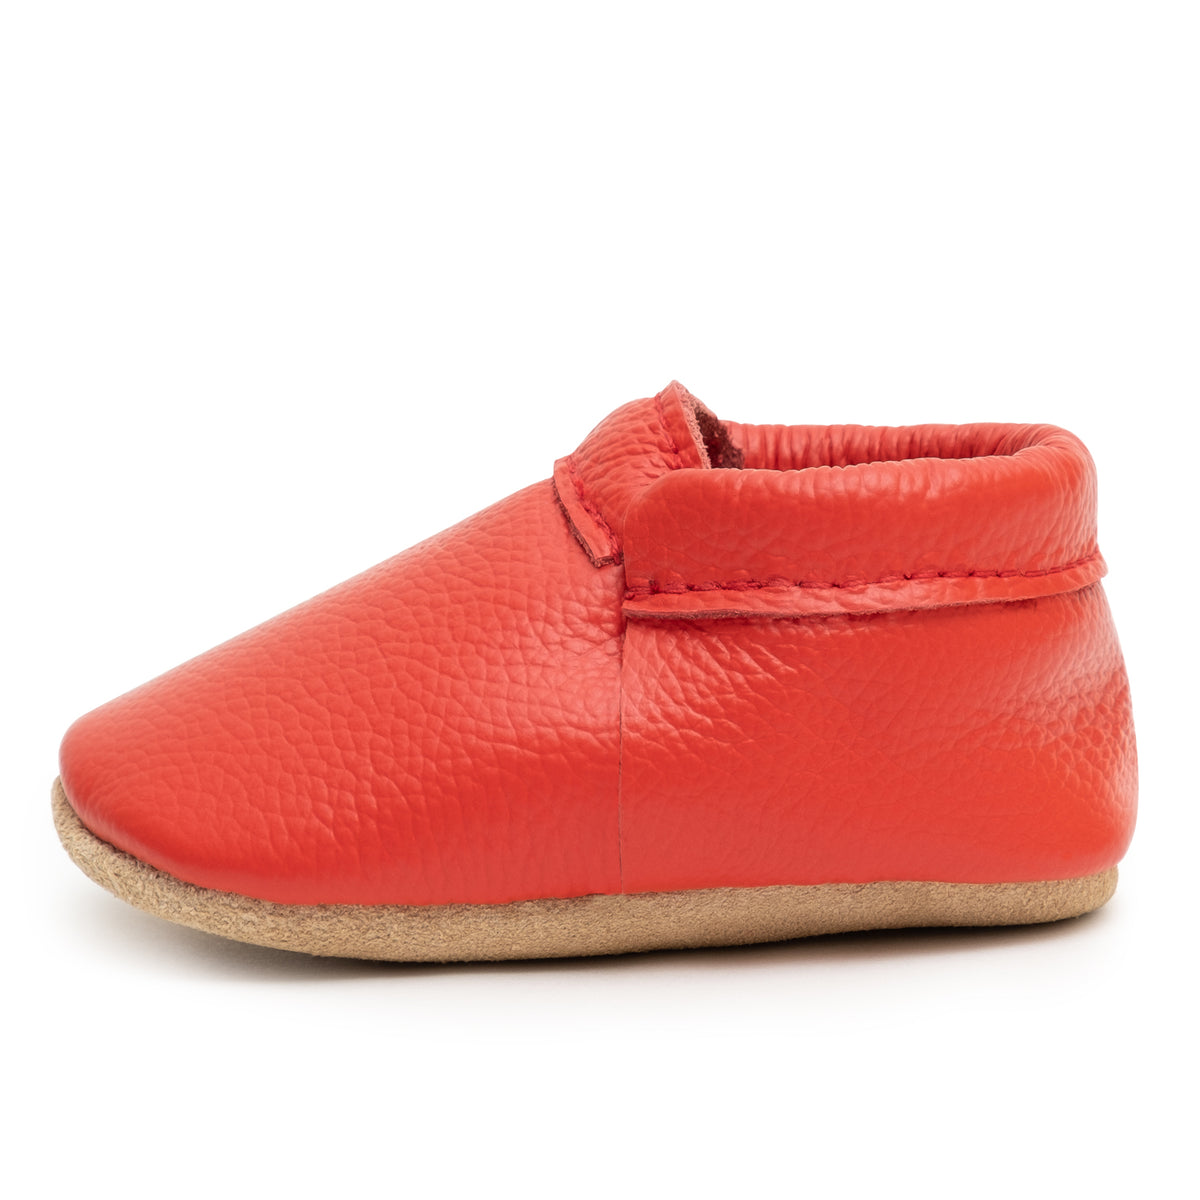 Fire Engine Fringeless Moccasins